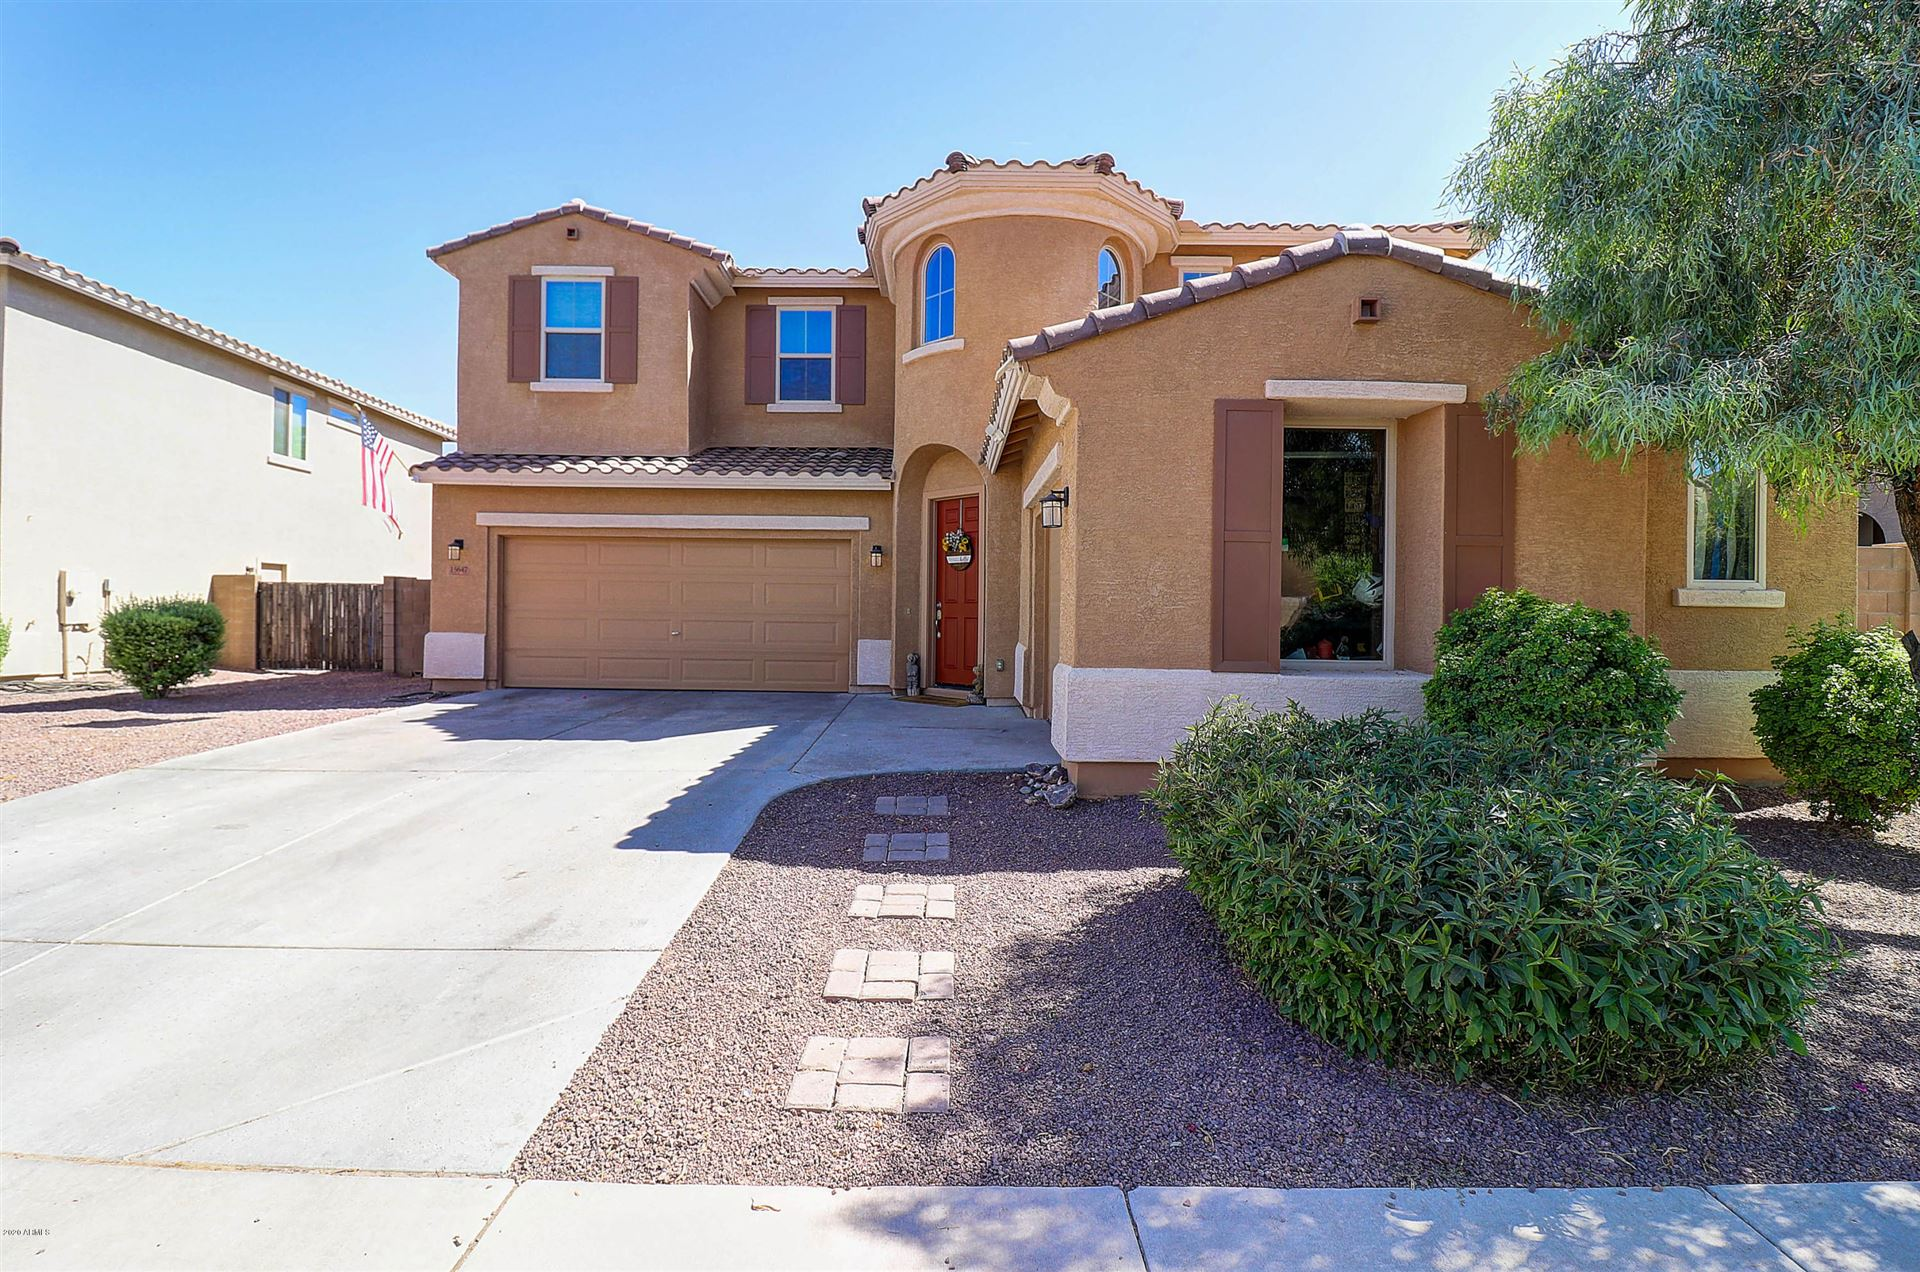 15647 W SIERRA Street, Surprise, AZ 85379 - MLS#: 6092627